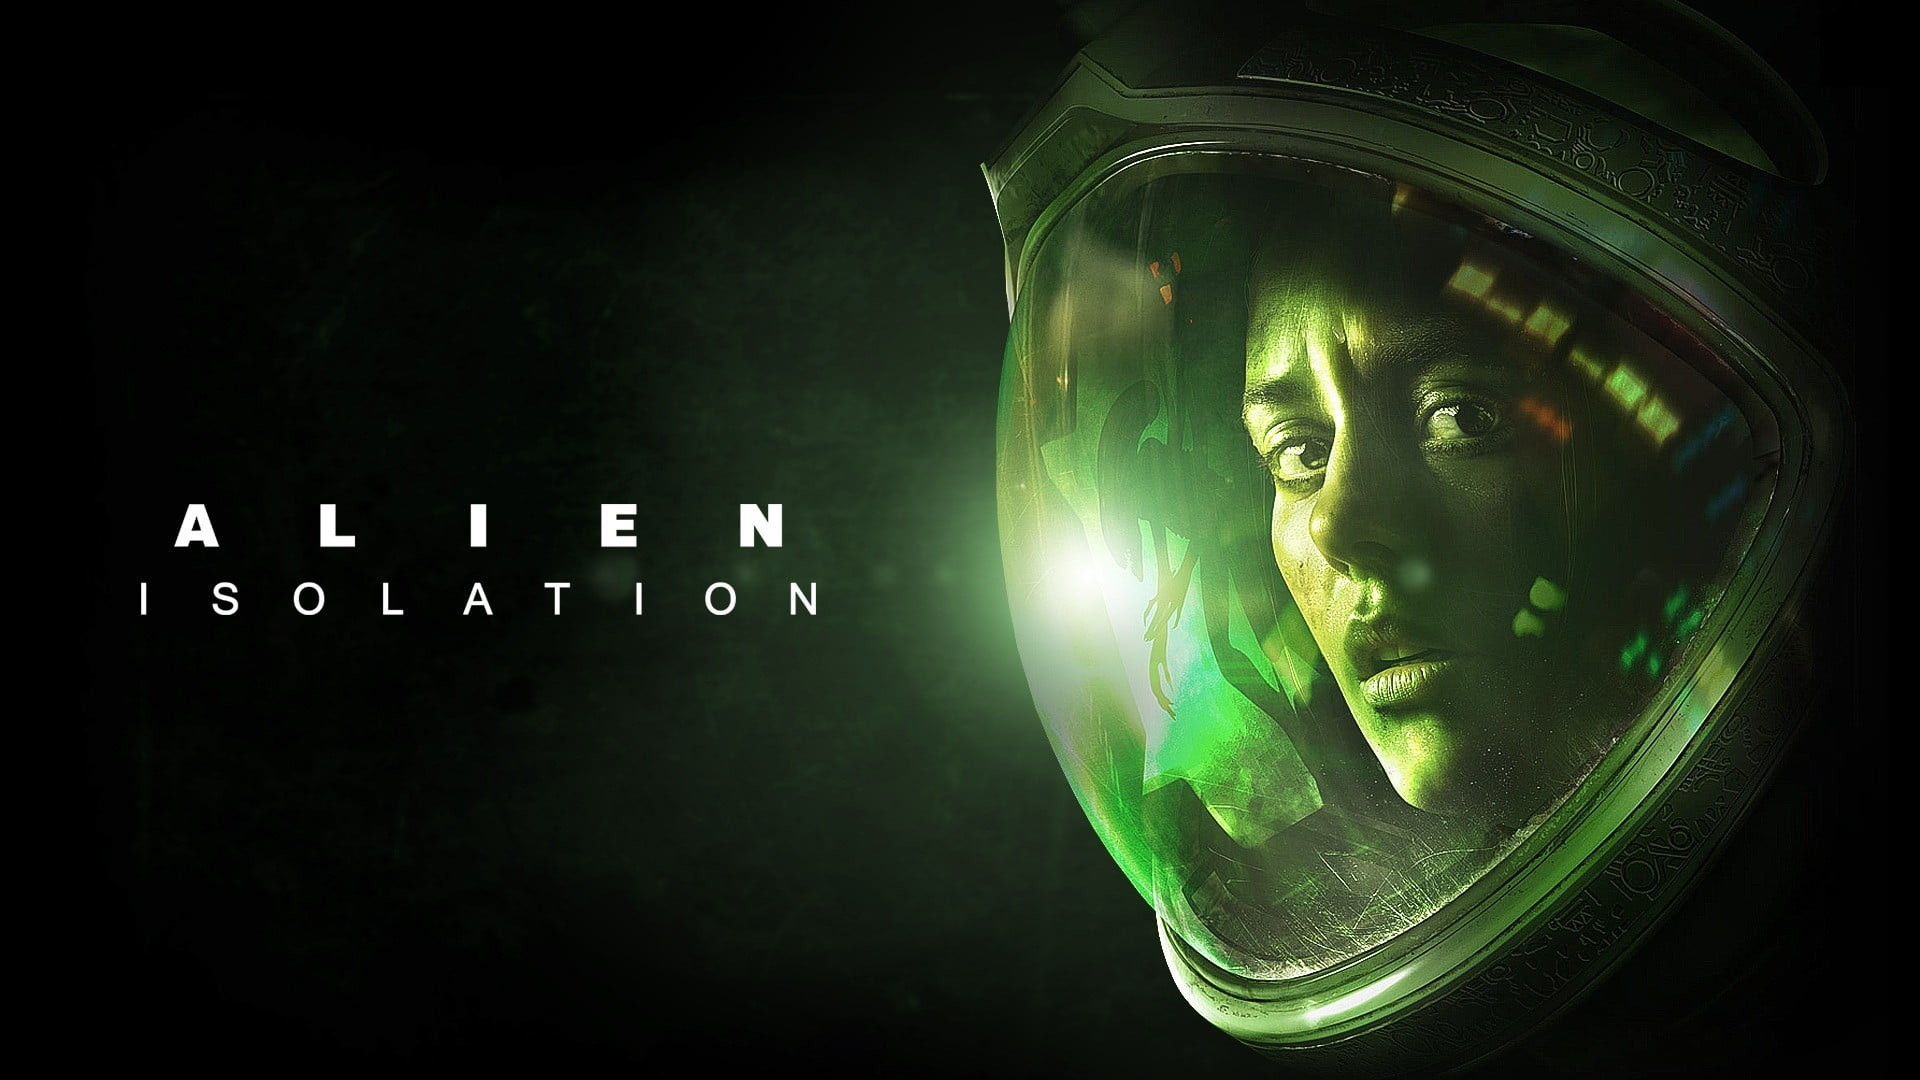 Res: 1920x1080, Alien Isolation movie poster HD wallpaper